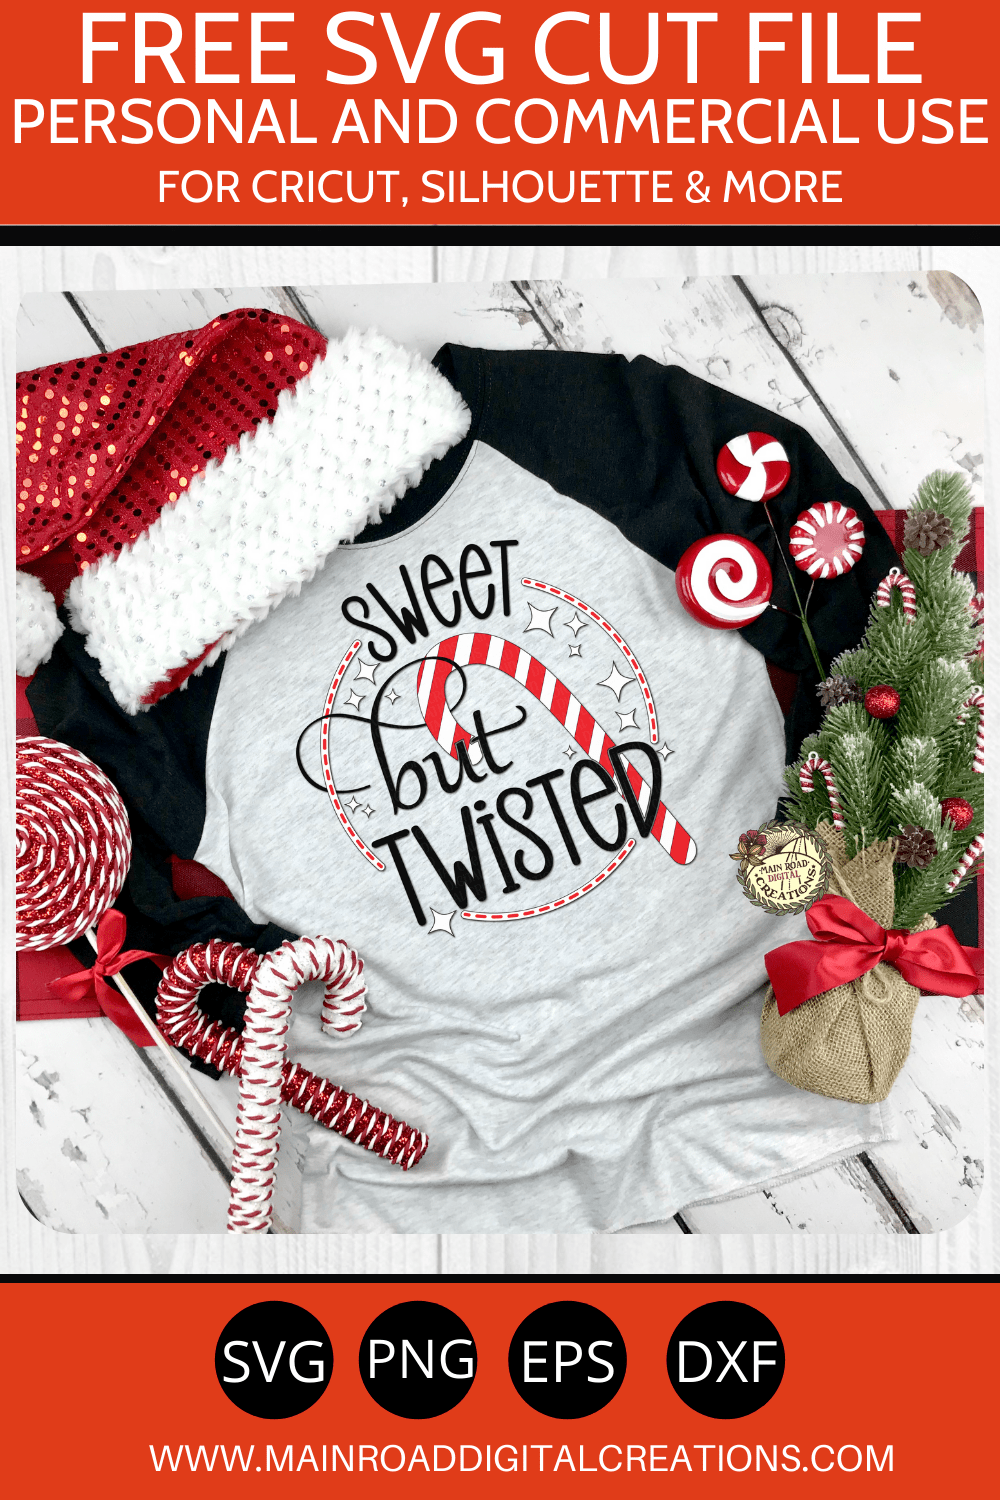 free christmas svg, candy cane svg free, sweet but twisted free svg, cricut  cut files